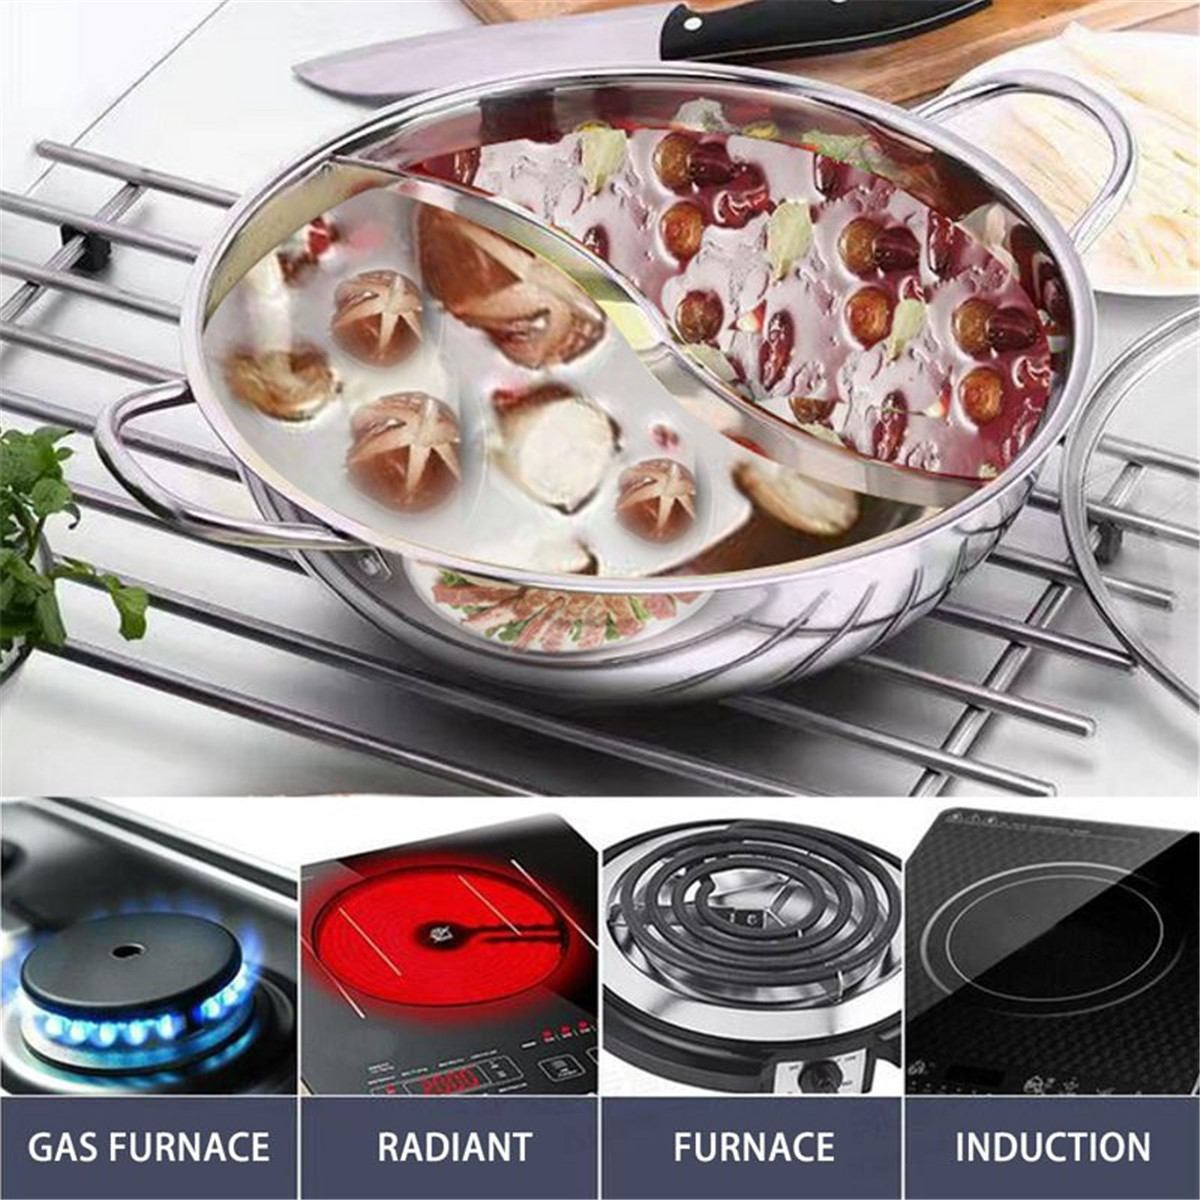 Stainless Steel Pot Hotpot Induction Cooker Gas Stove Compatible Pot Home Kitchen Cookware Soup Cooking Pot Twin Divided